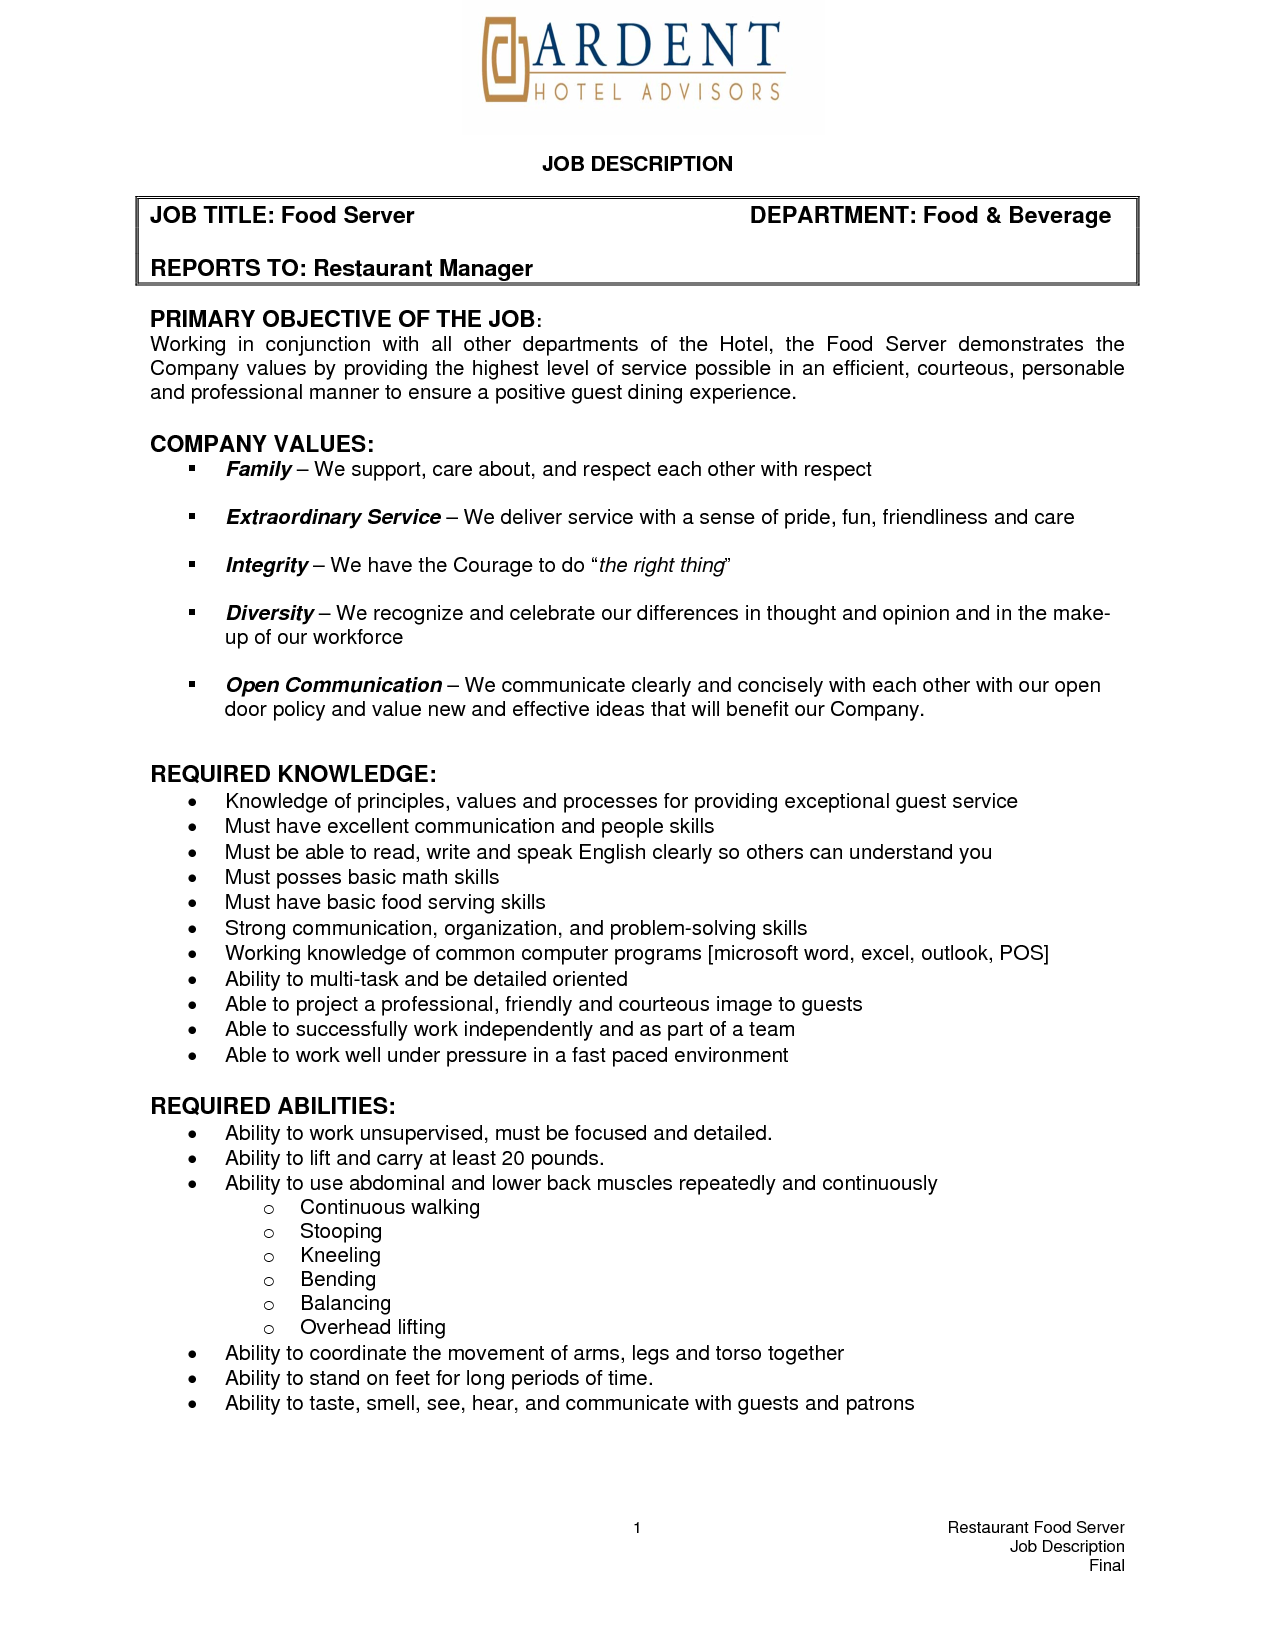 warehouse qualifications resume warehouse worker resume samples resume objective examples aploon warehouse operations manager resume